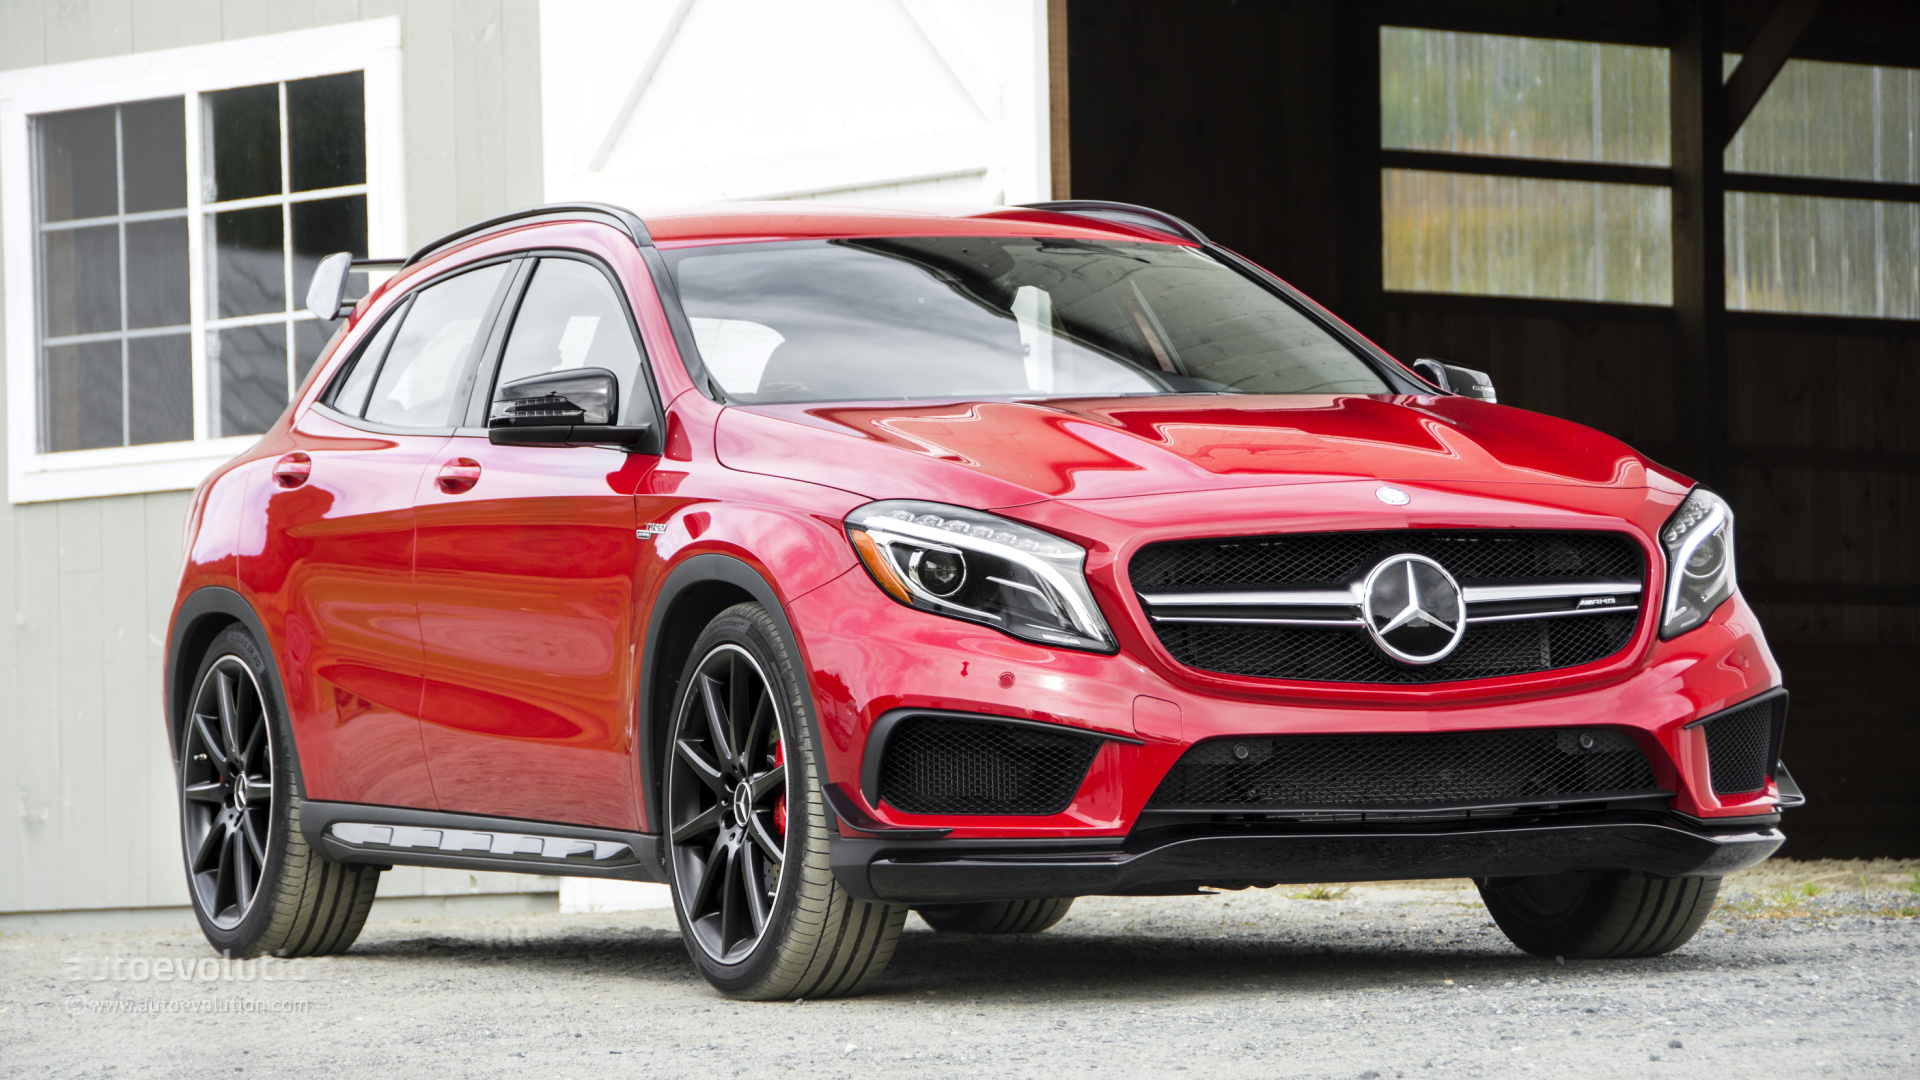 2015 mercedes-benz gla250 4matic, gla45 amg review - autoevolution